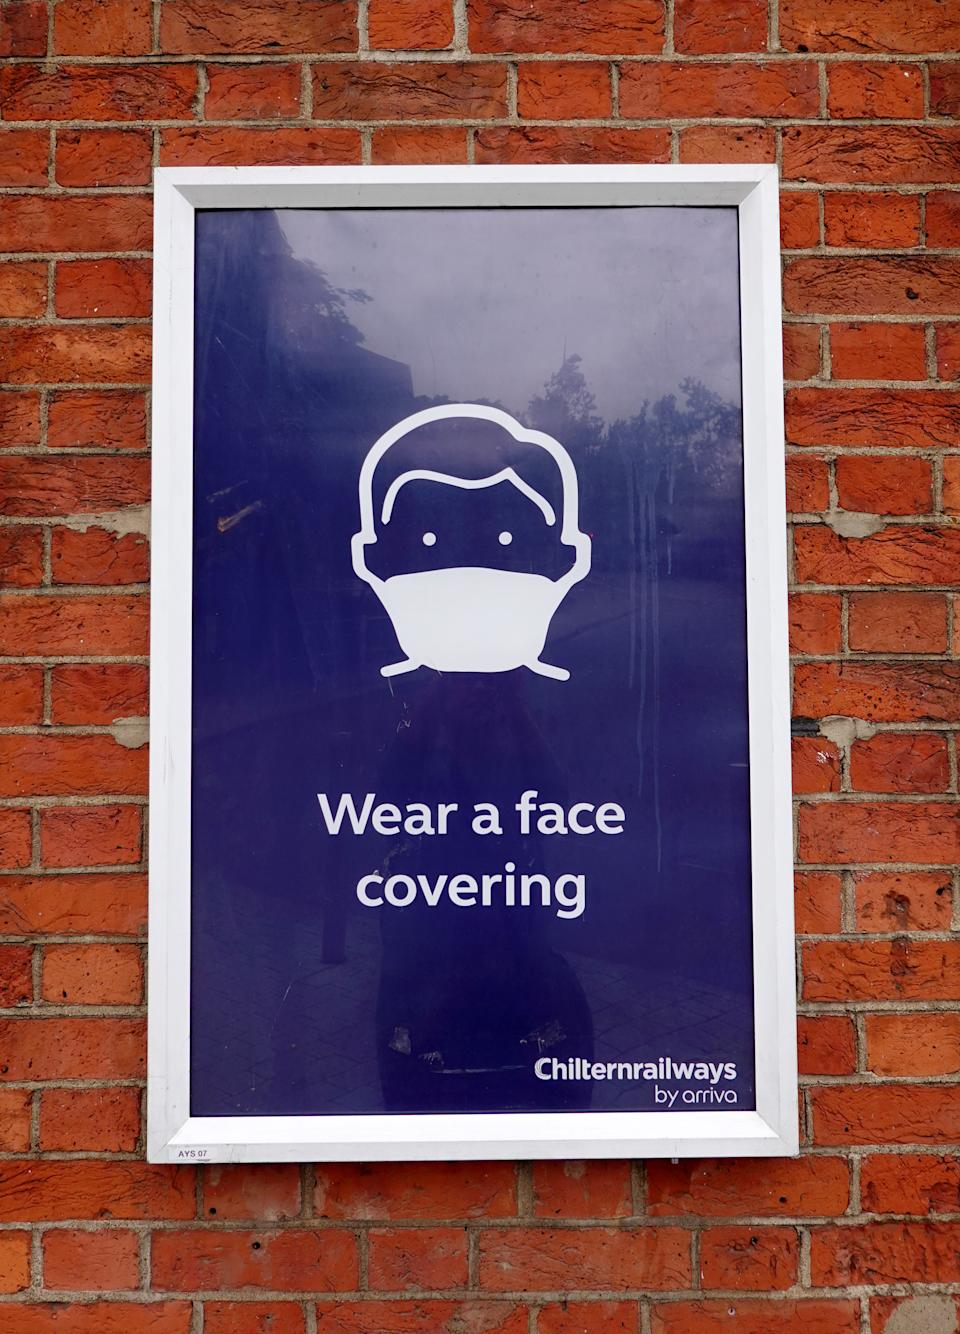 AYLESBURY, ENGLAND - JUNE 12: Notices at a railway station advising the public to wear a mask, wash hands and travel off-peak if possible on June 12, 2020 in Aylesbury, England .As the British government further relaxes Covid-19 lockdown measures in England, this week sees preparations being made to open non-essential stores and Transport for London handing out face masks to commuters. International travelers arriving in the UK will face a 14-day quarantine period. (Photo by Catherine Ivill/Getty Images)